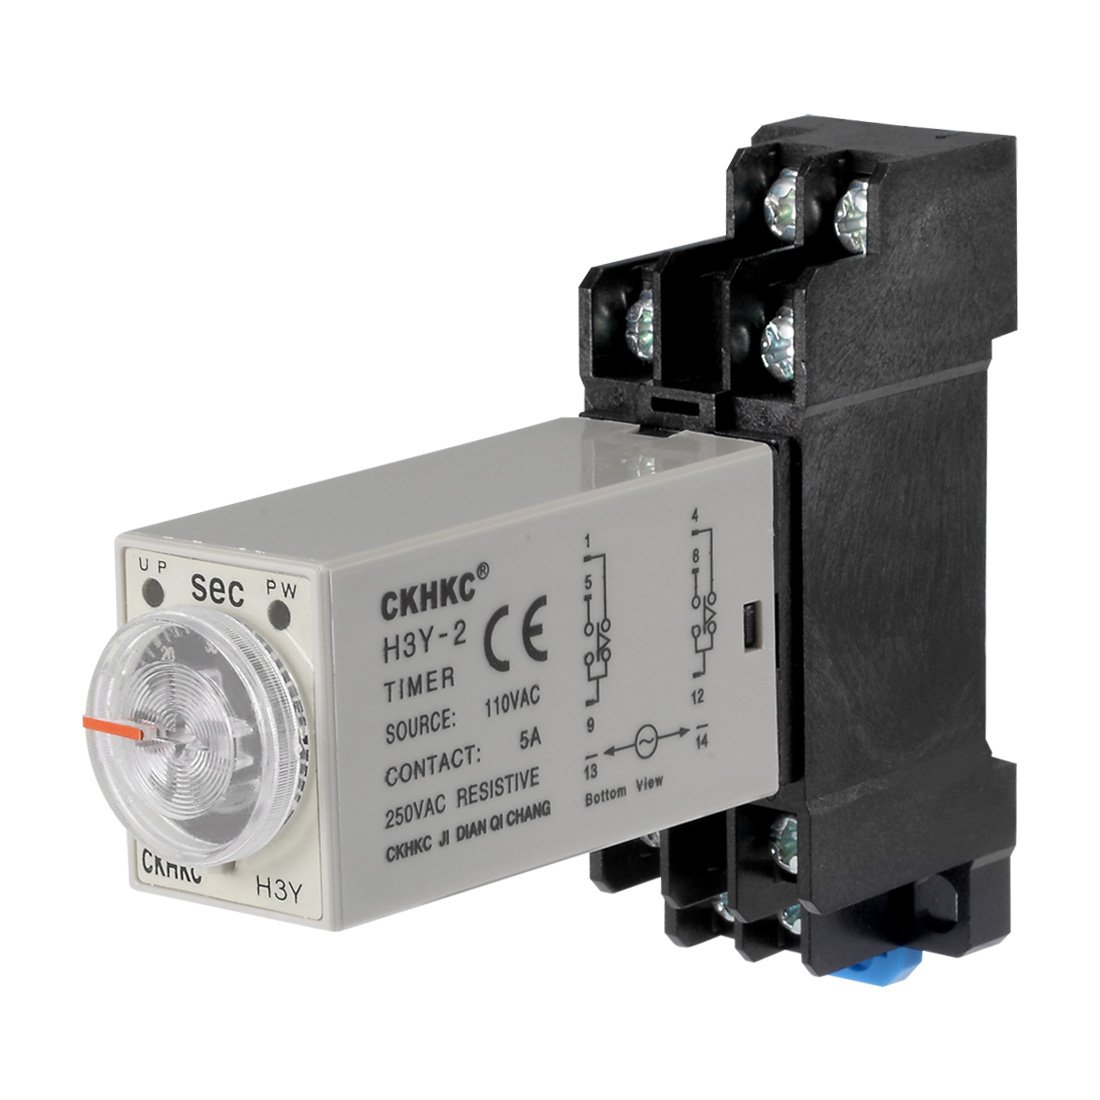 uxcell AC110V 60S 8 Terminals Range Adjustable Delay Timer Time Relay H3Y-2 with base